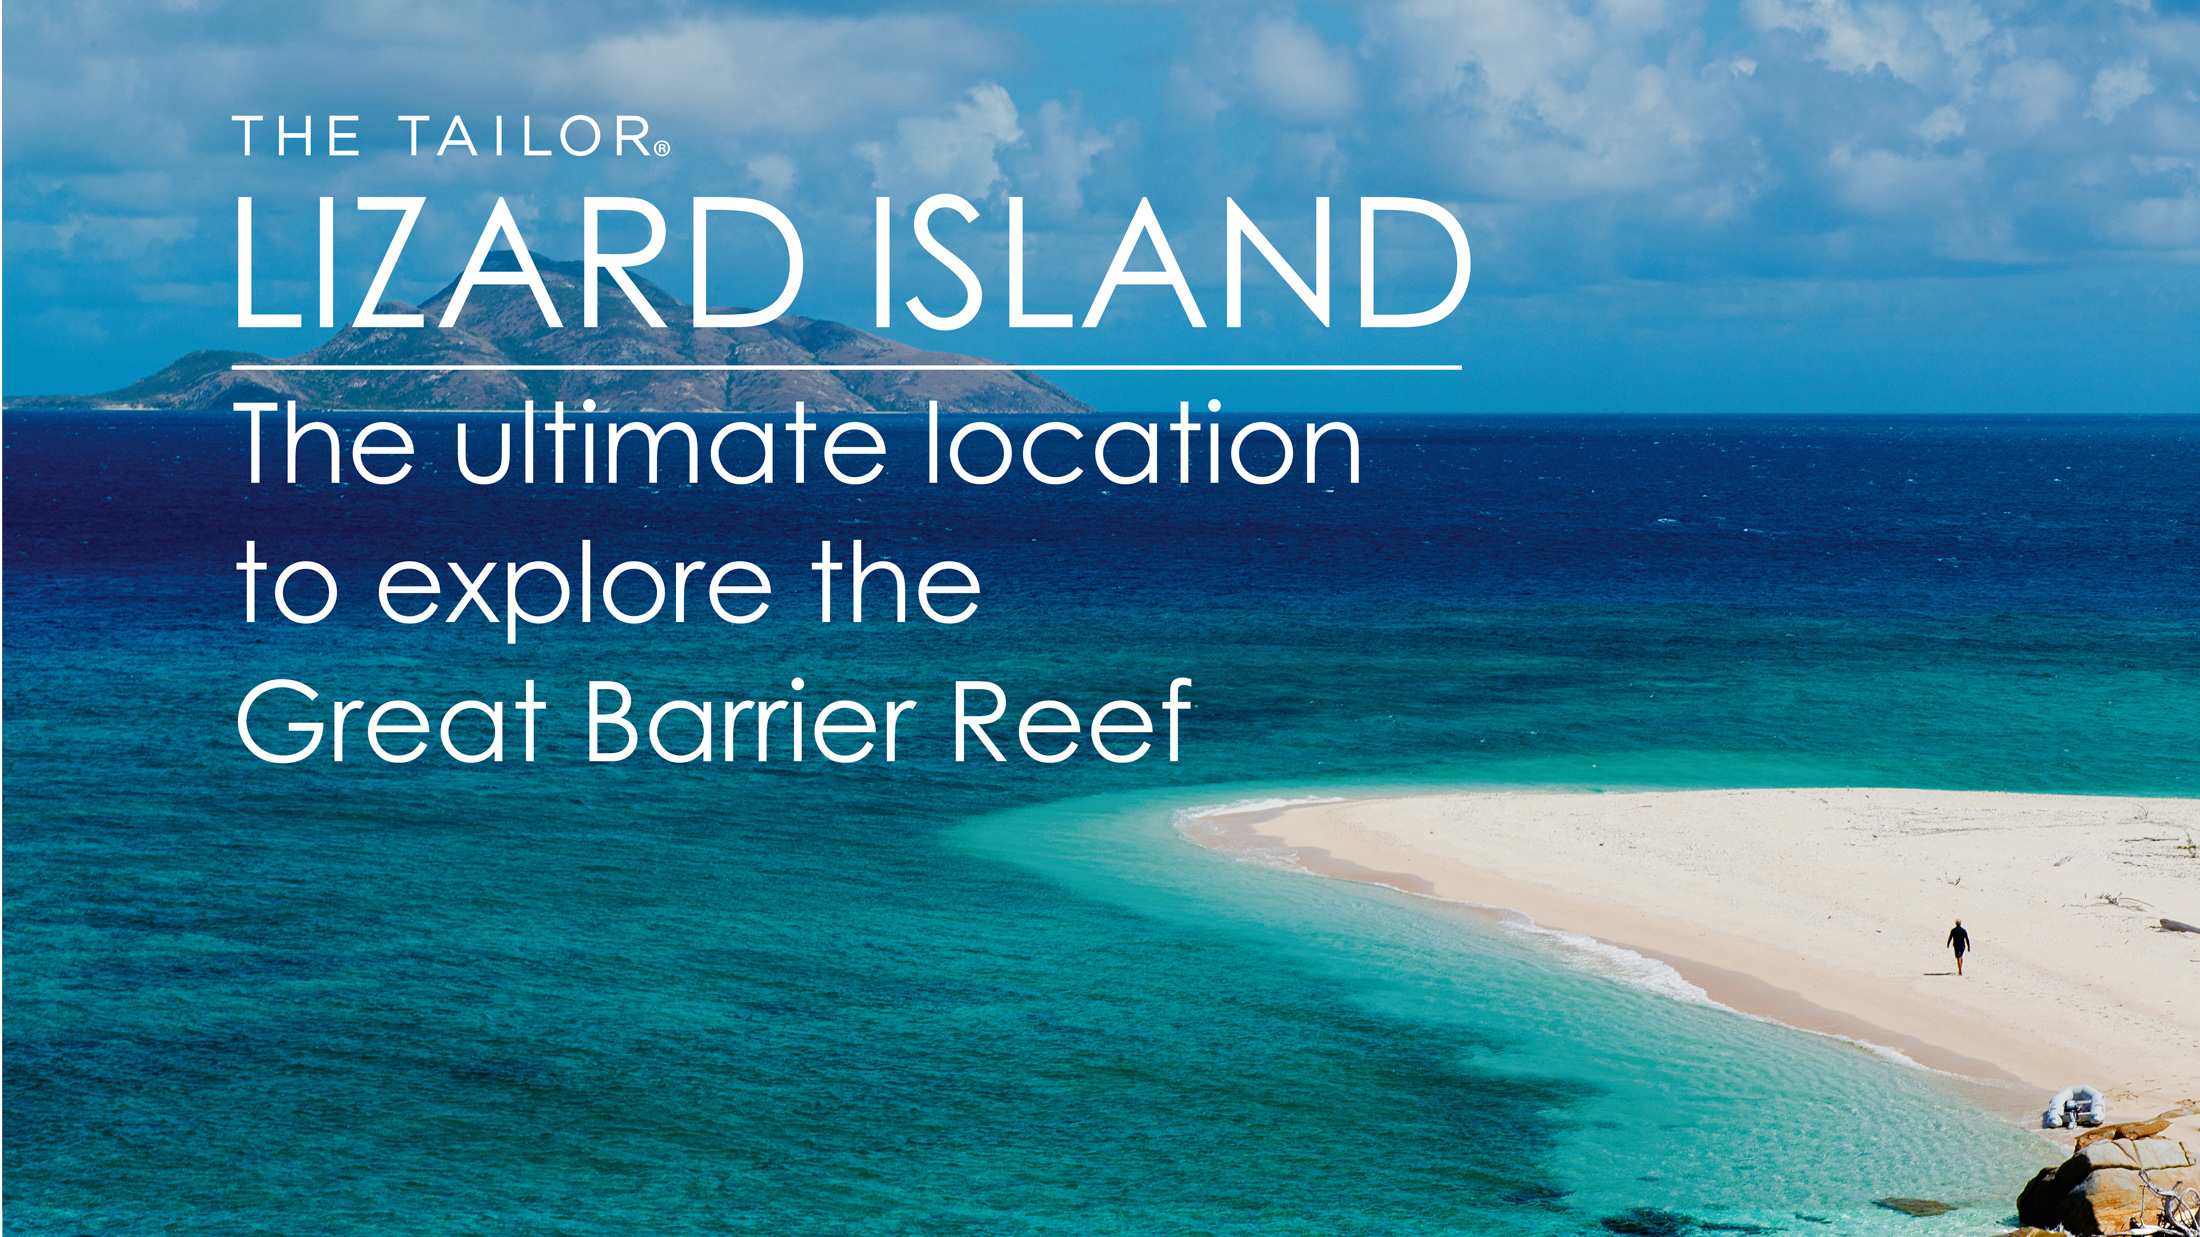 Thumbnail for the listing 'Lizard Island the ultimate location to explore the Great Barrier Reef'